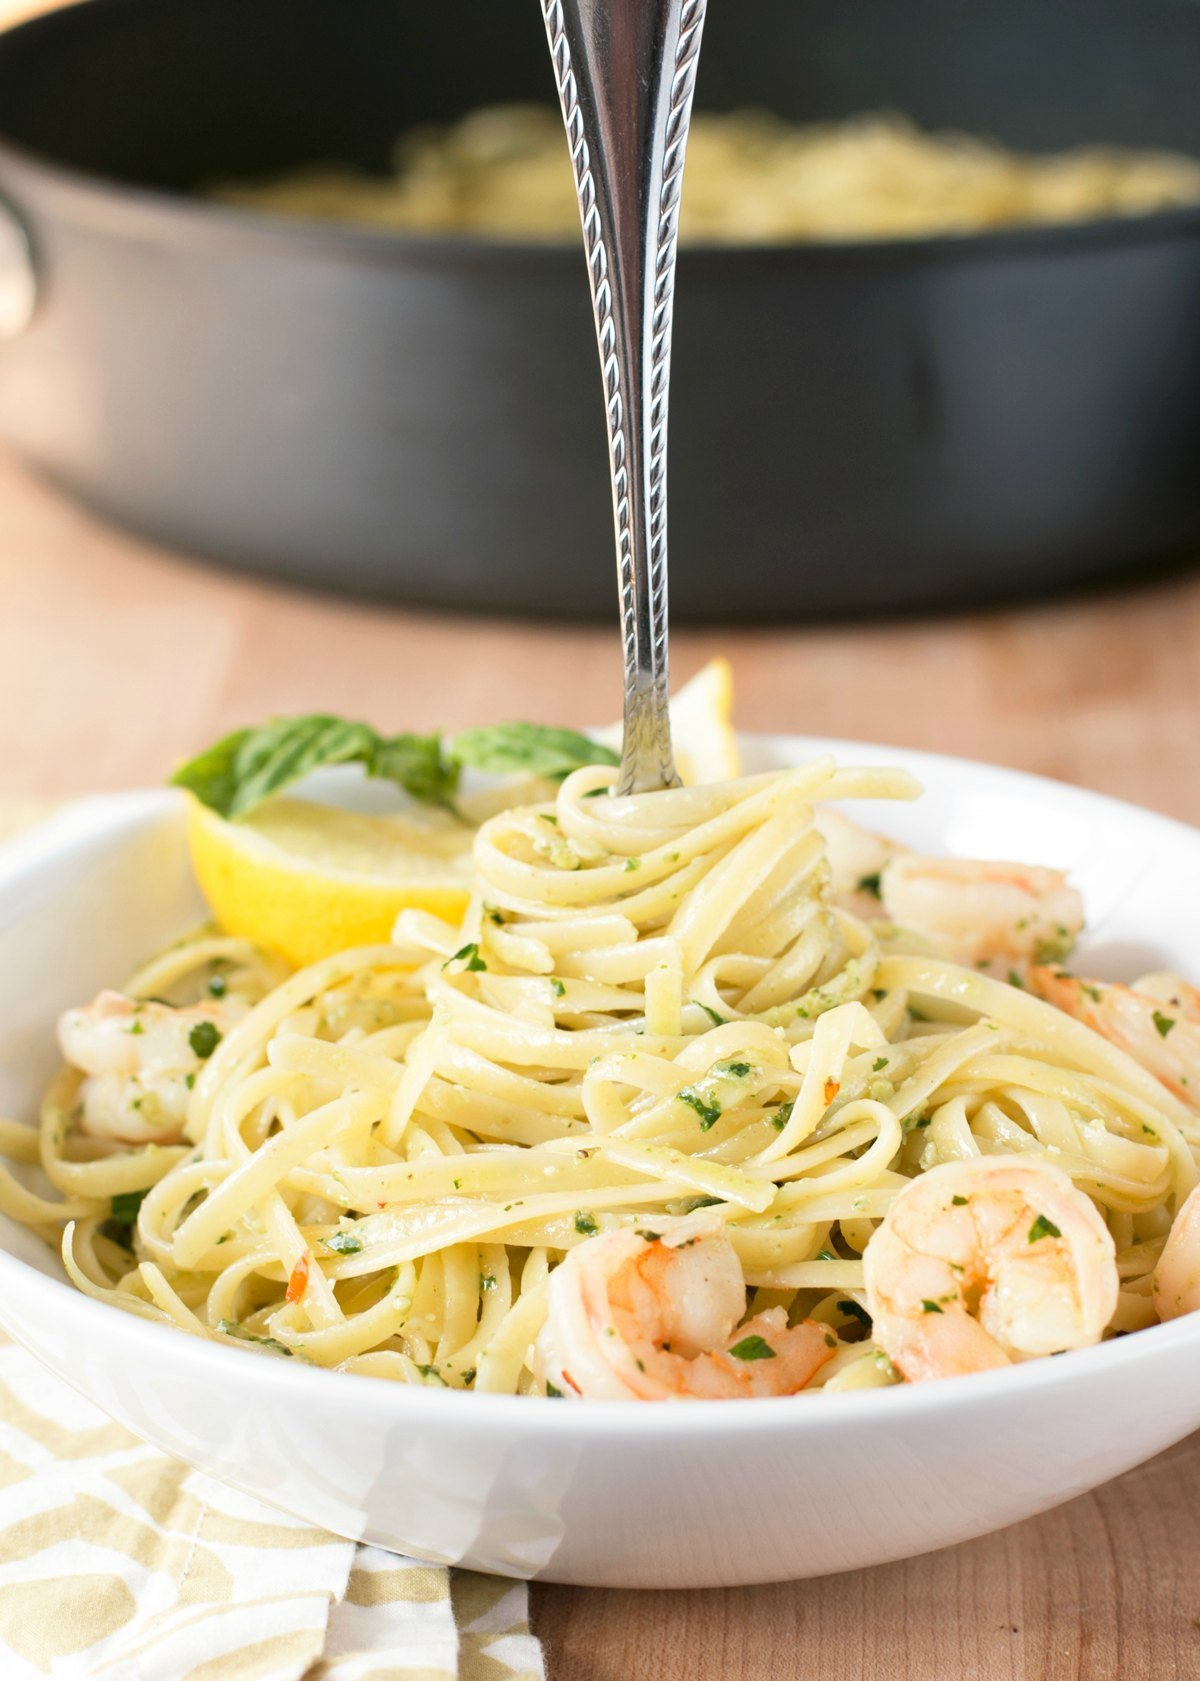 Large white bowl of pesto shrimp scampi pasta with a fork in the center